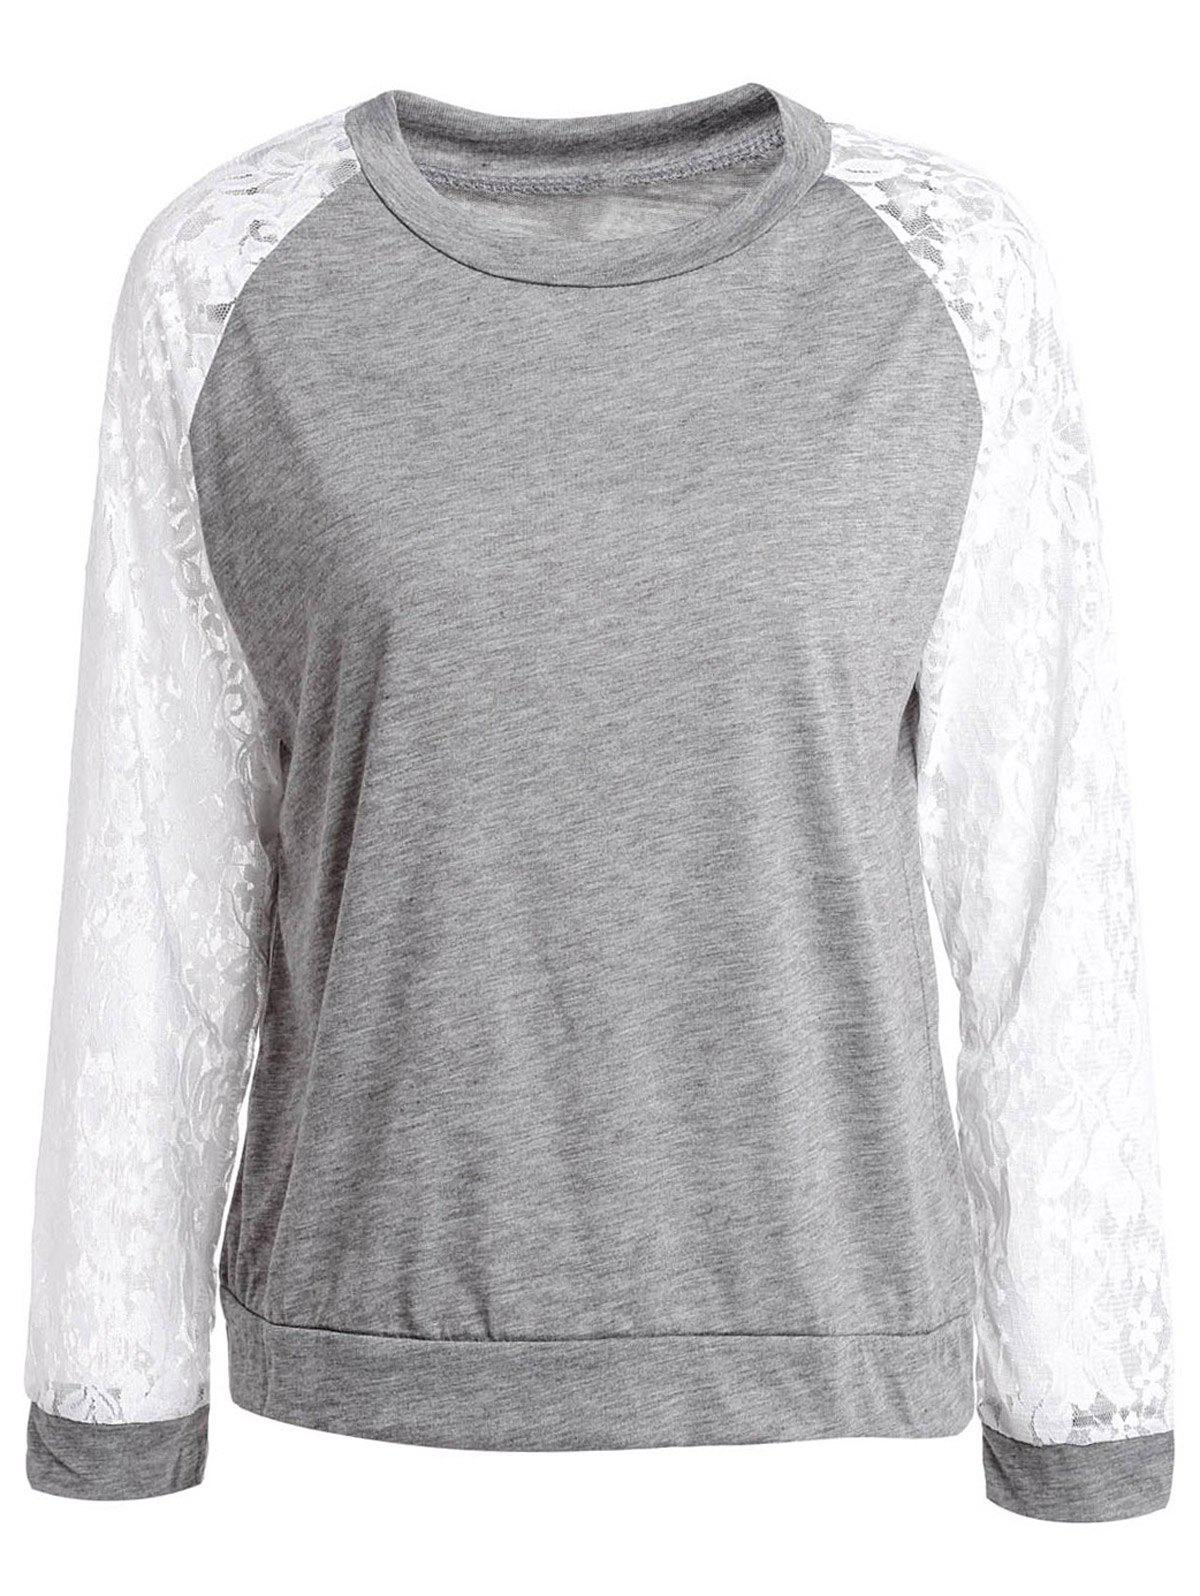 Sweet Lace Splicing Round Neck Long Sleeve Sweatshirt For Women - GRAY S